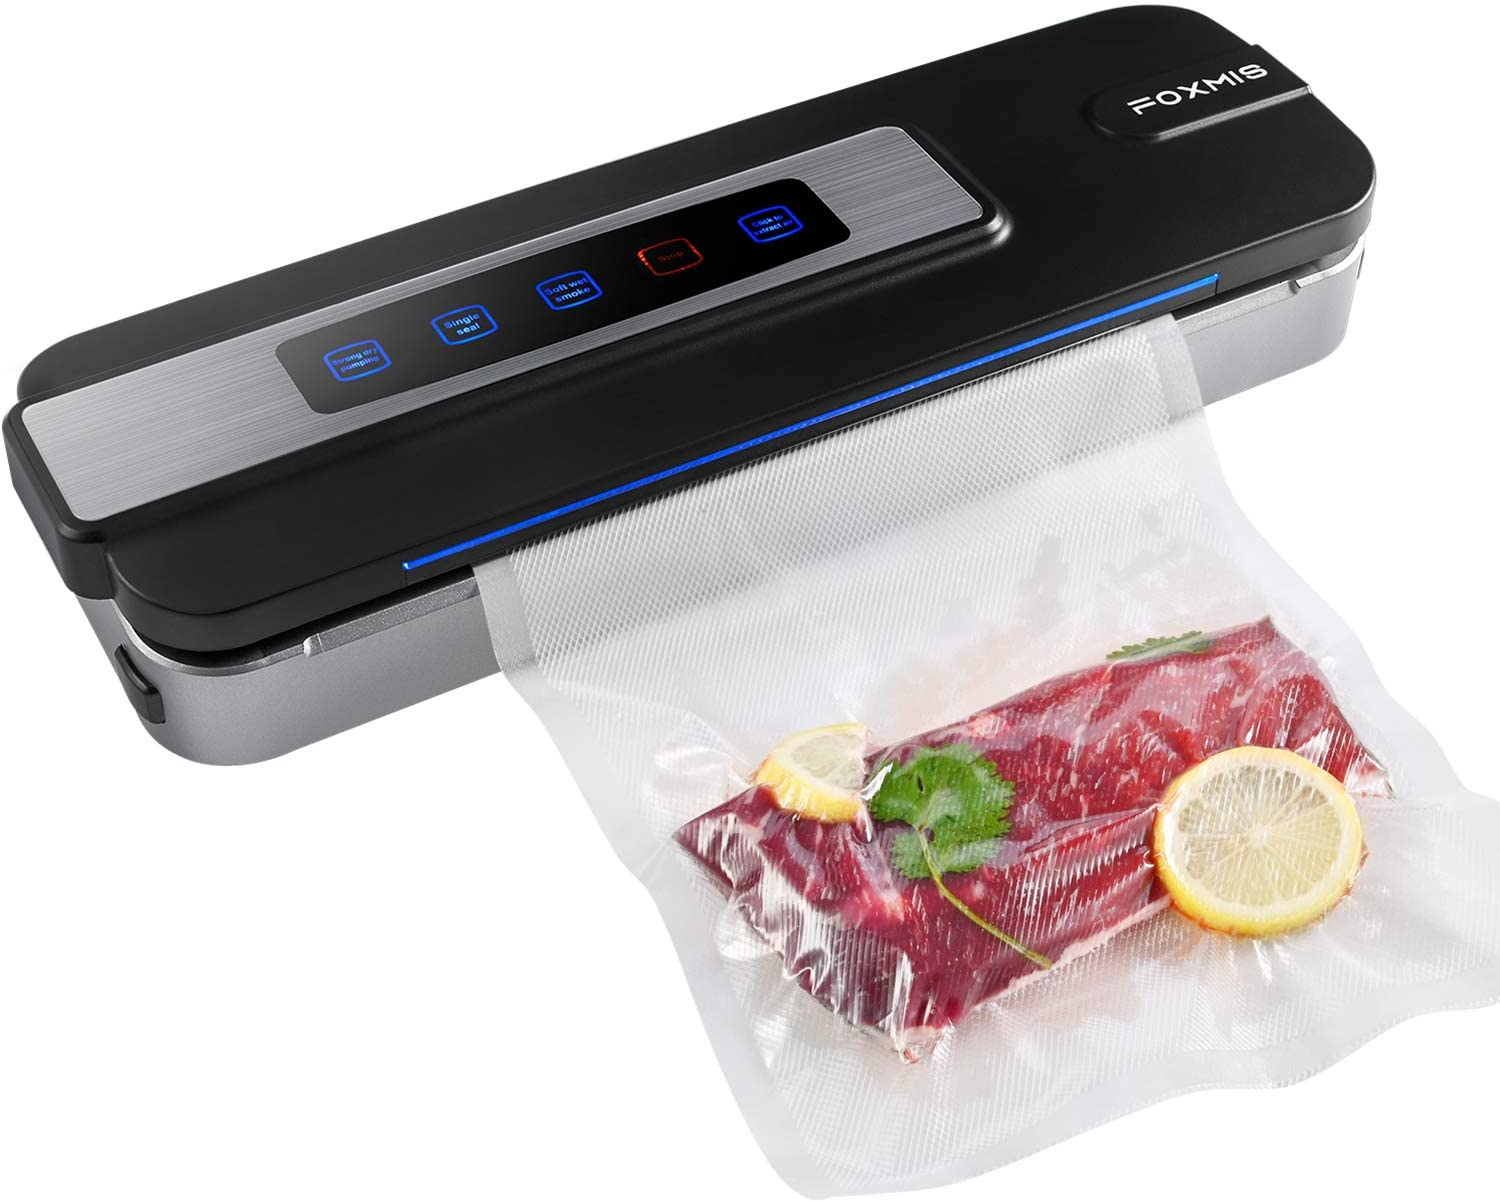 Vacuum Sealer Machine, Automatic and Manual Food Sealer Machine for Food Savers, Dry & Moist Mode Air Sealing System with 10 Sealing Bags for Food Preservation Storage, Compact Design for Sous Vide